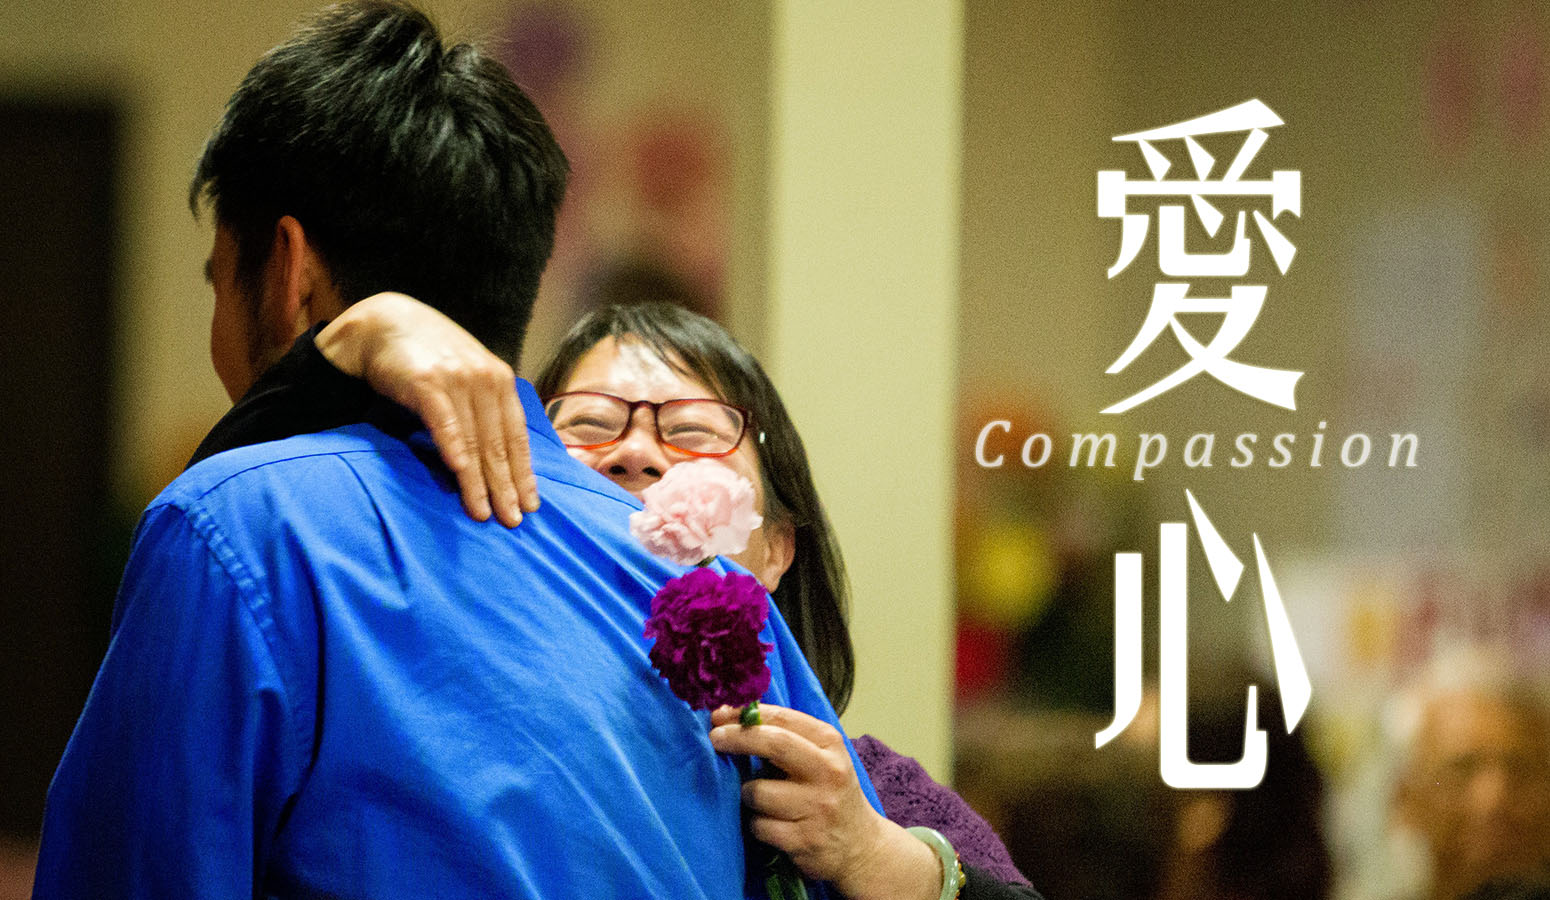 Compassion_PS_CHT